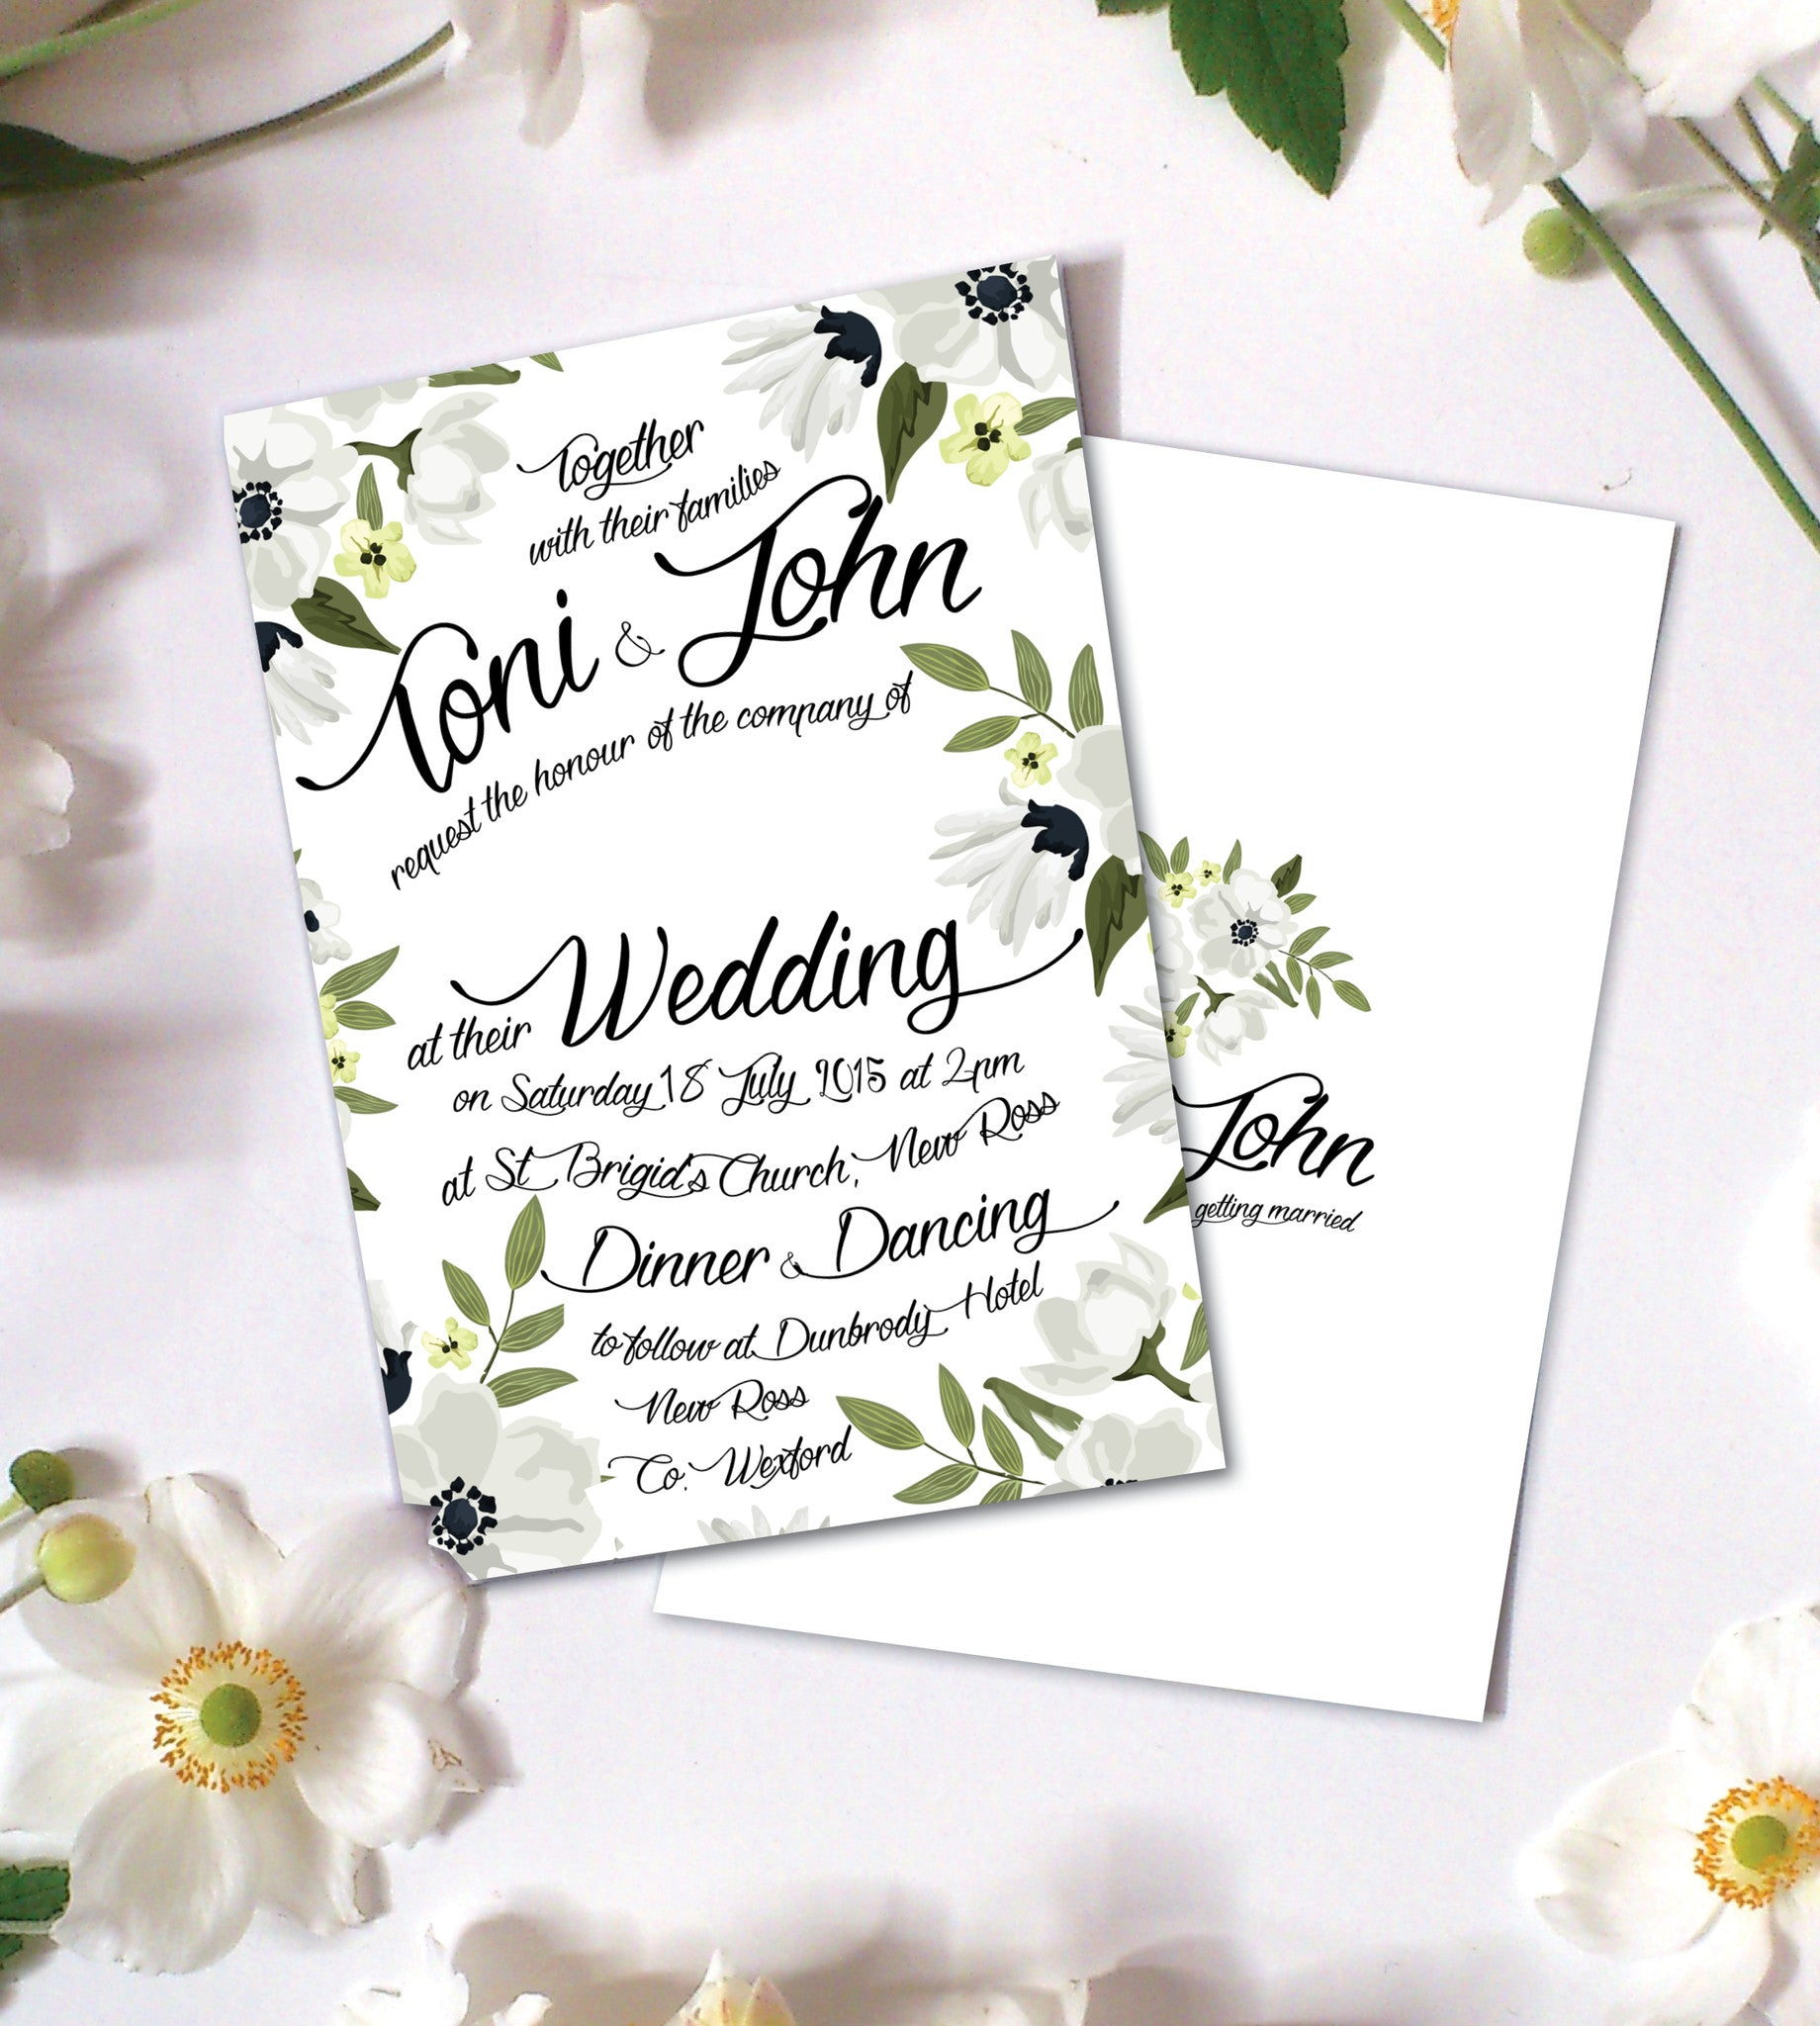 Design Our Day Floral Watercolour Wedding Invitation – Design Our ...